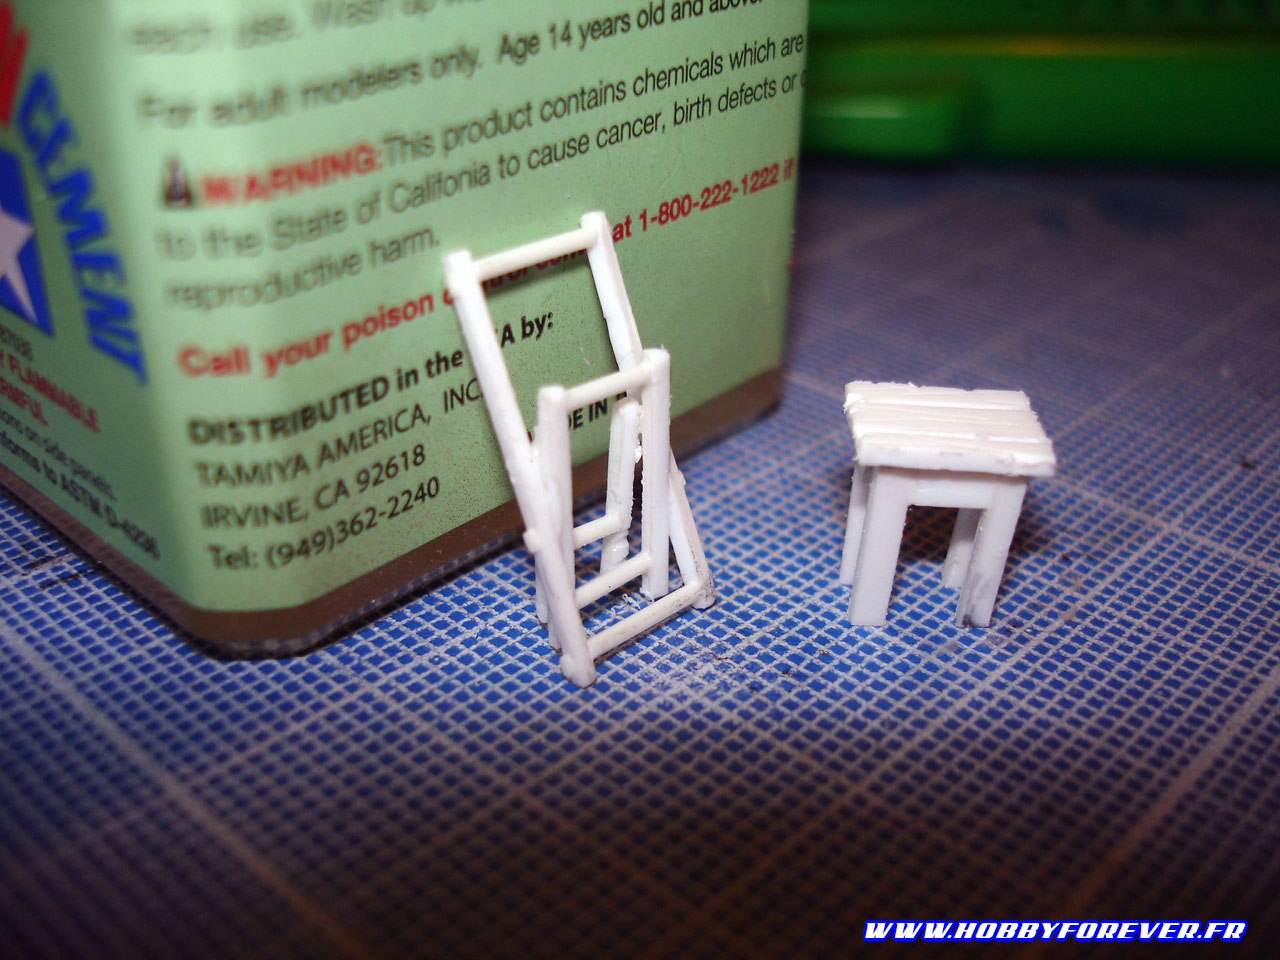 La chaise pliante et la table à côté d'un pot de colle Extra Thin Cement Tamiya